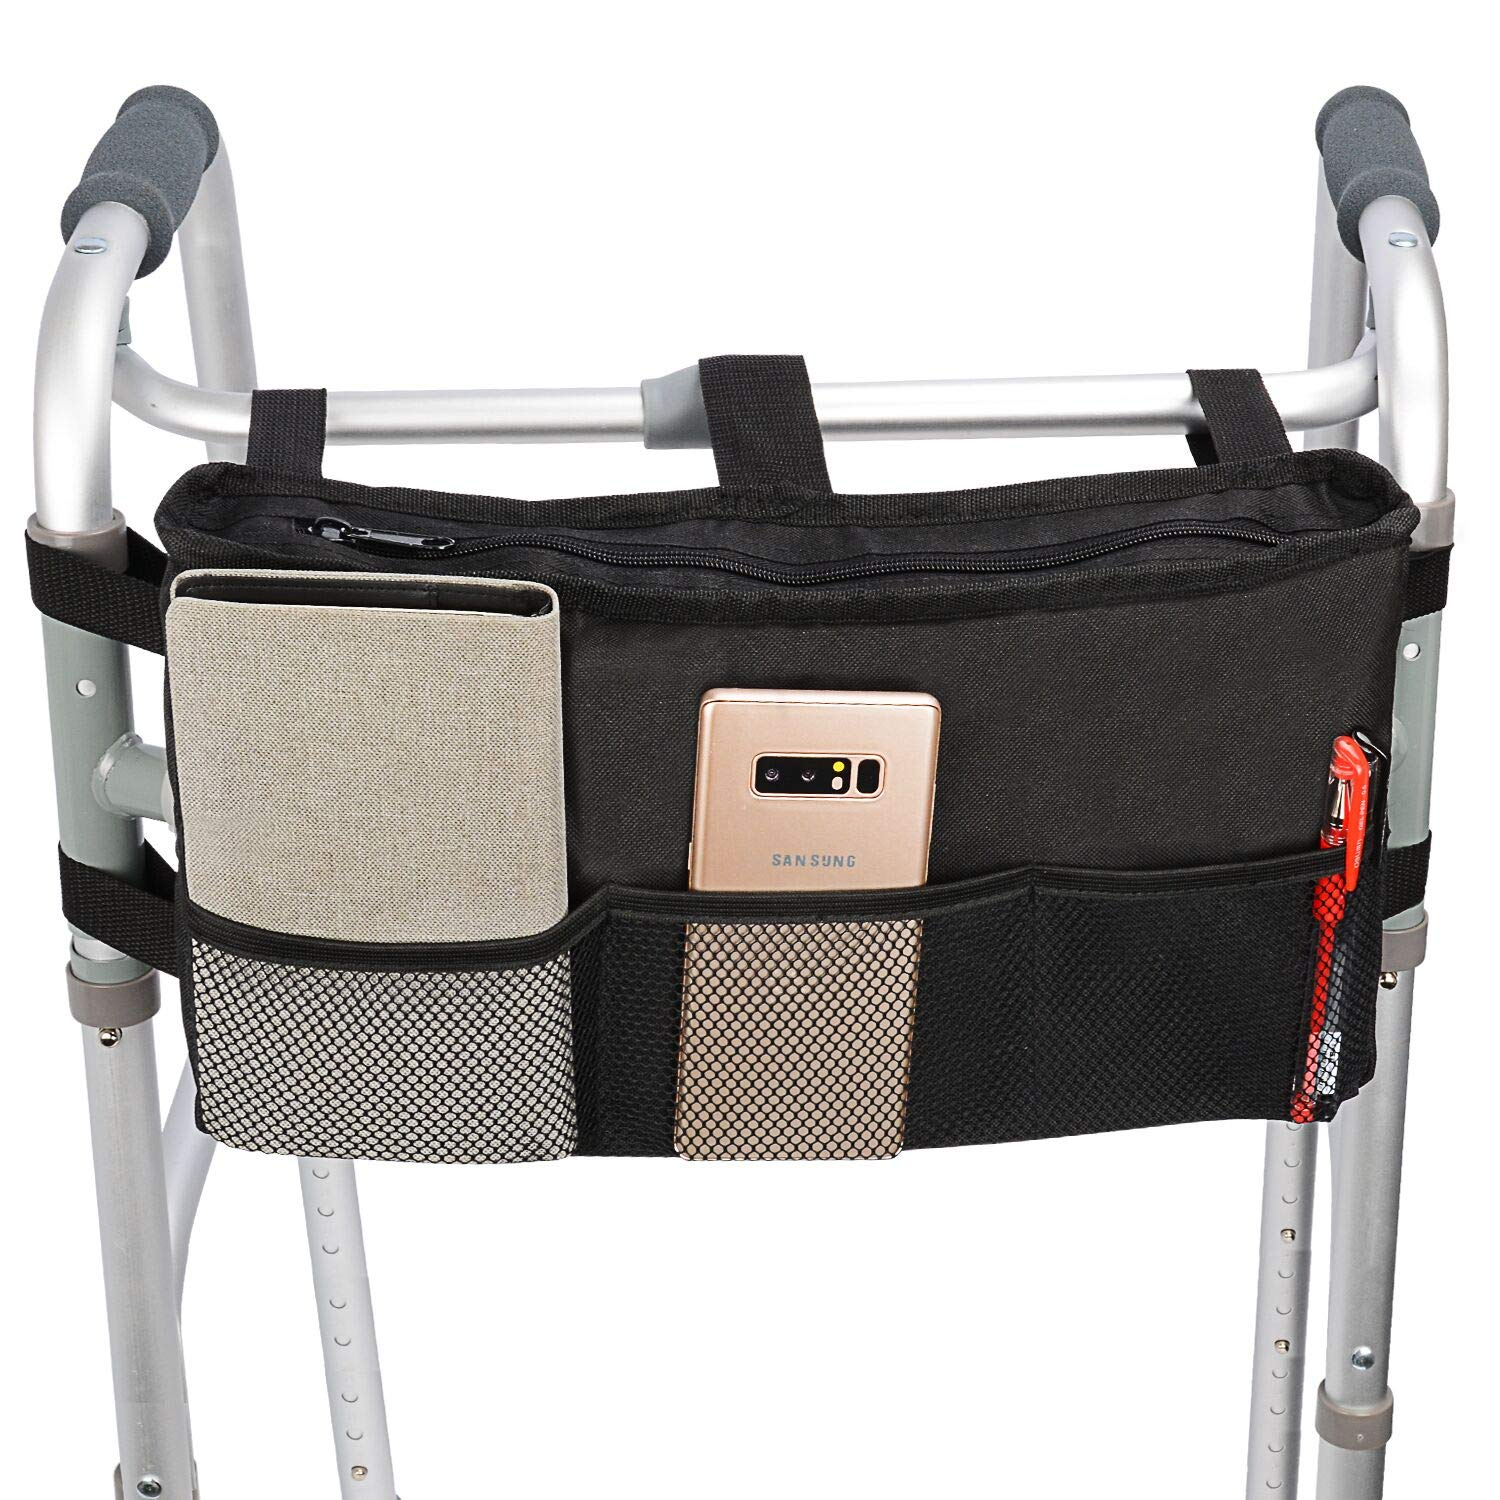 Walker Bag Hand Free Storage Bag Walker Attachment Handicap Basket Pouch for Rollator, Wheelchair, Folding Walkers (Black-Style 2) by Uncle Yang